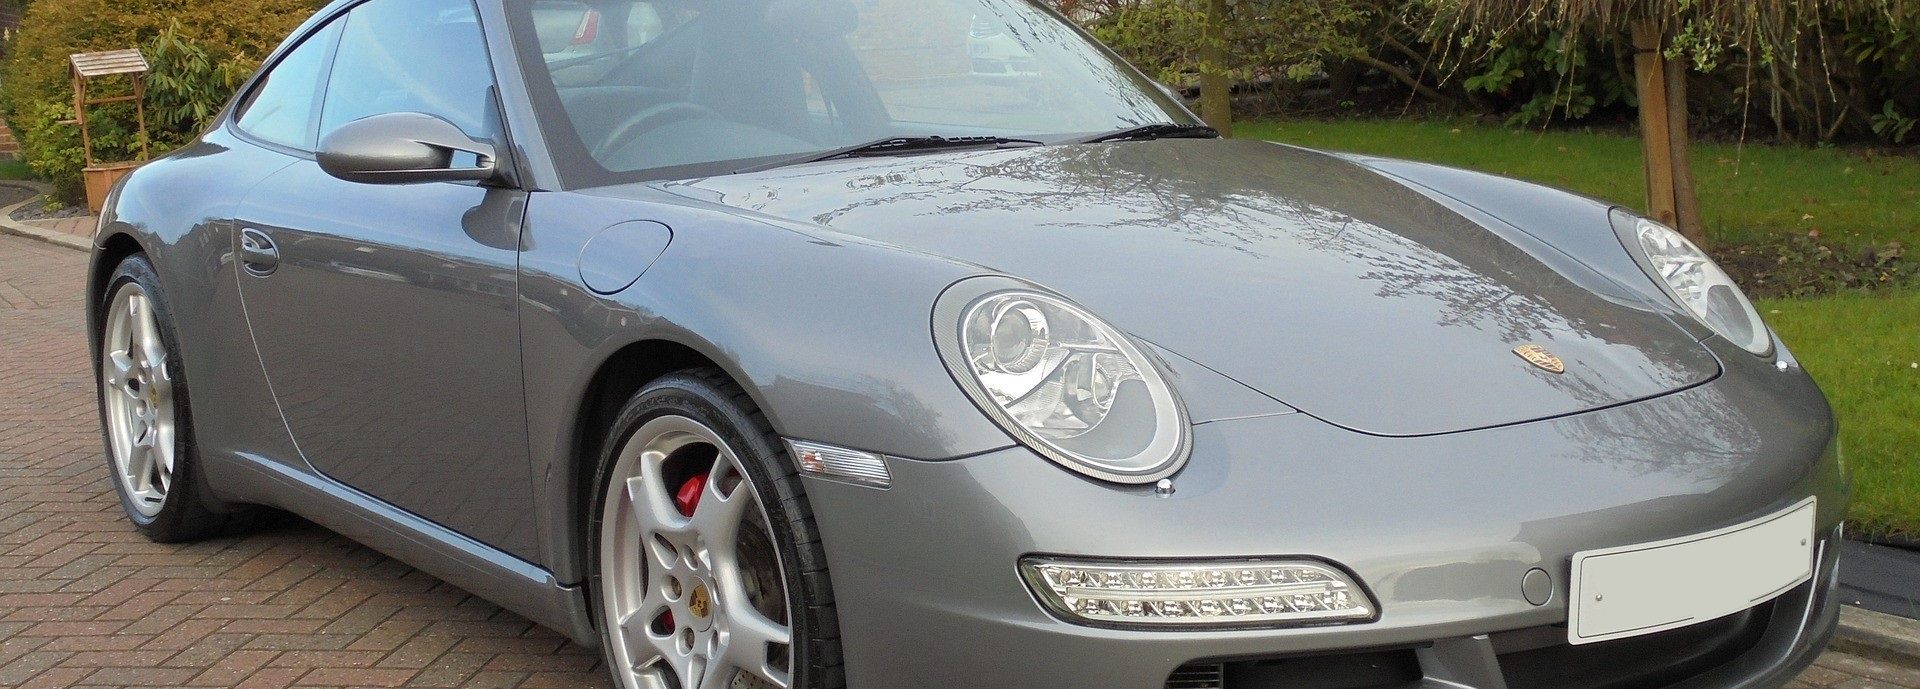 Silver Porsche in Independence, Missouri | Breast Cancer Car Donations